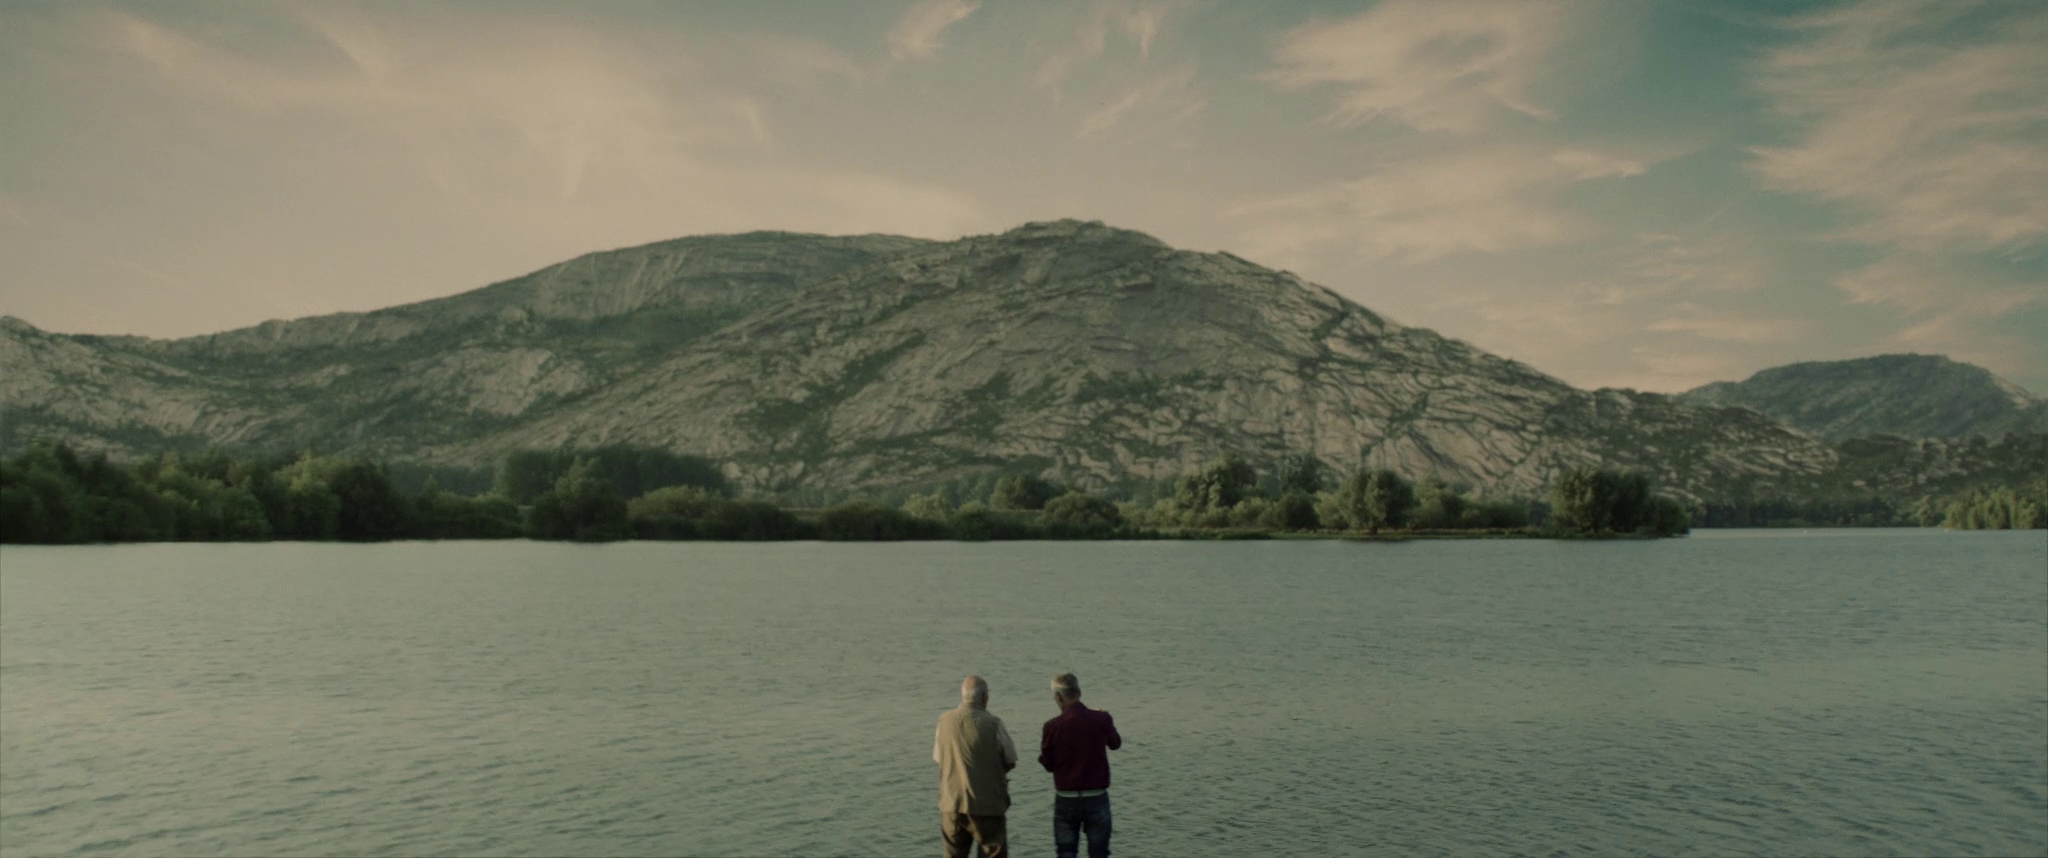 beautiful view with two men contemplating the mountain lined with a lake